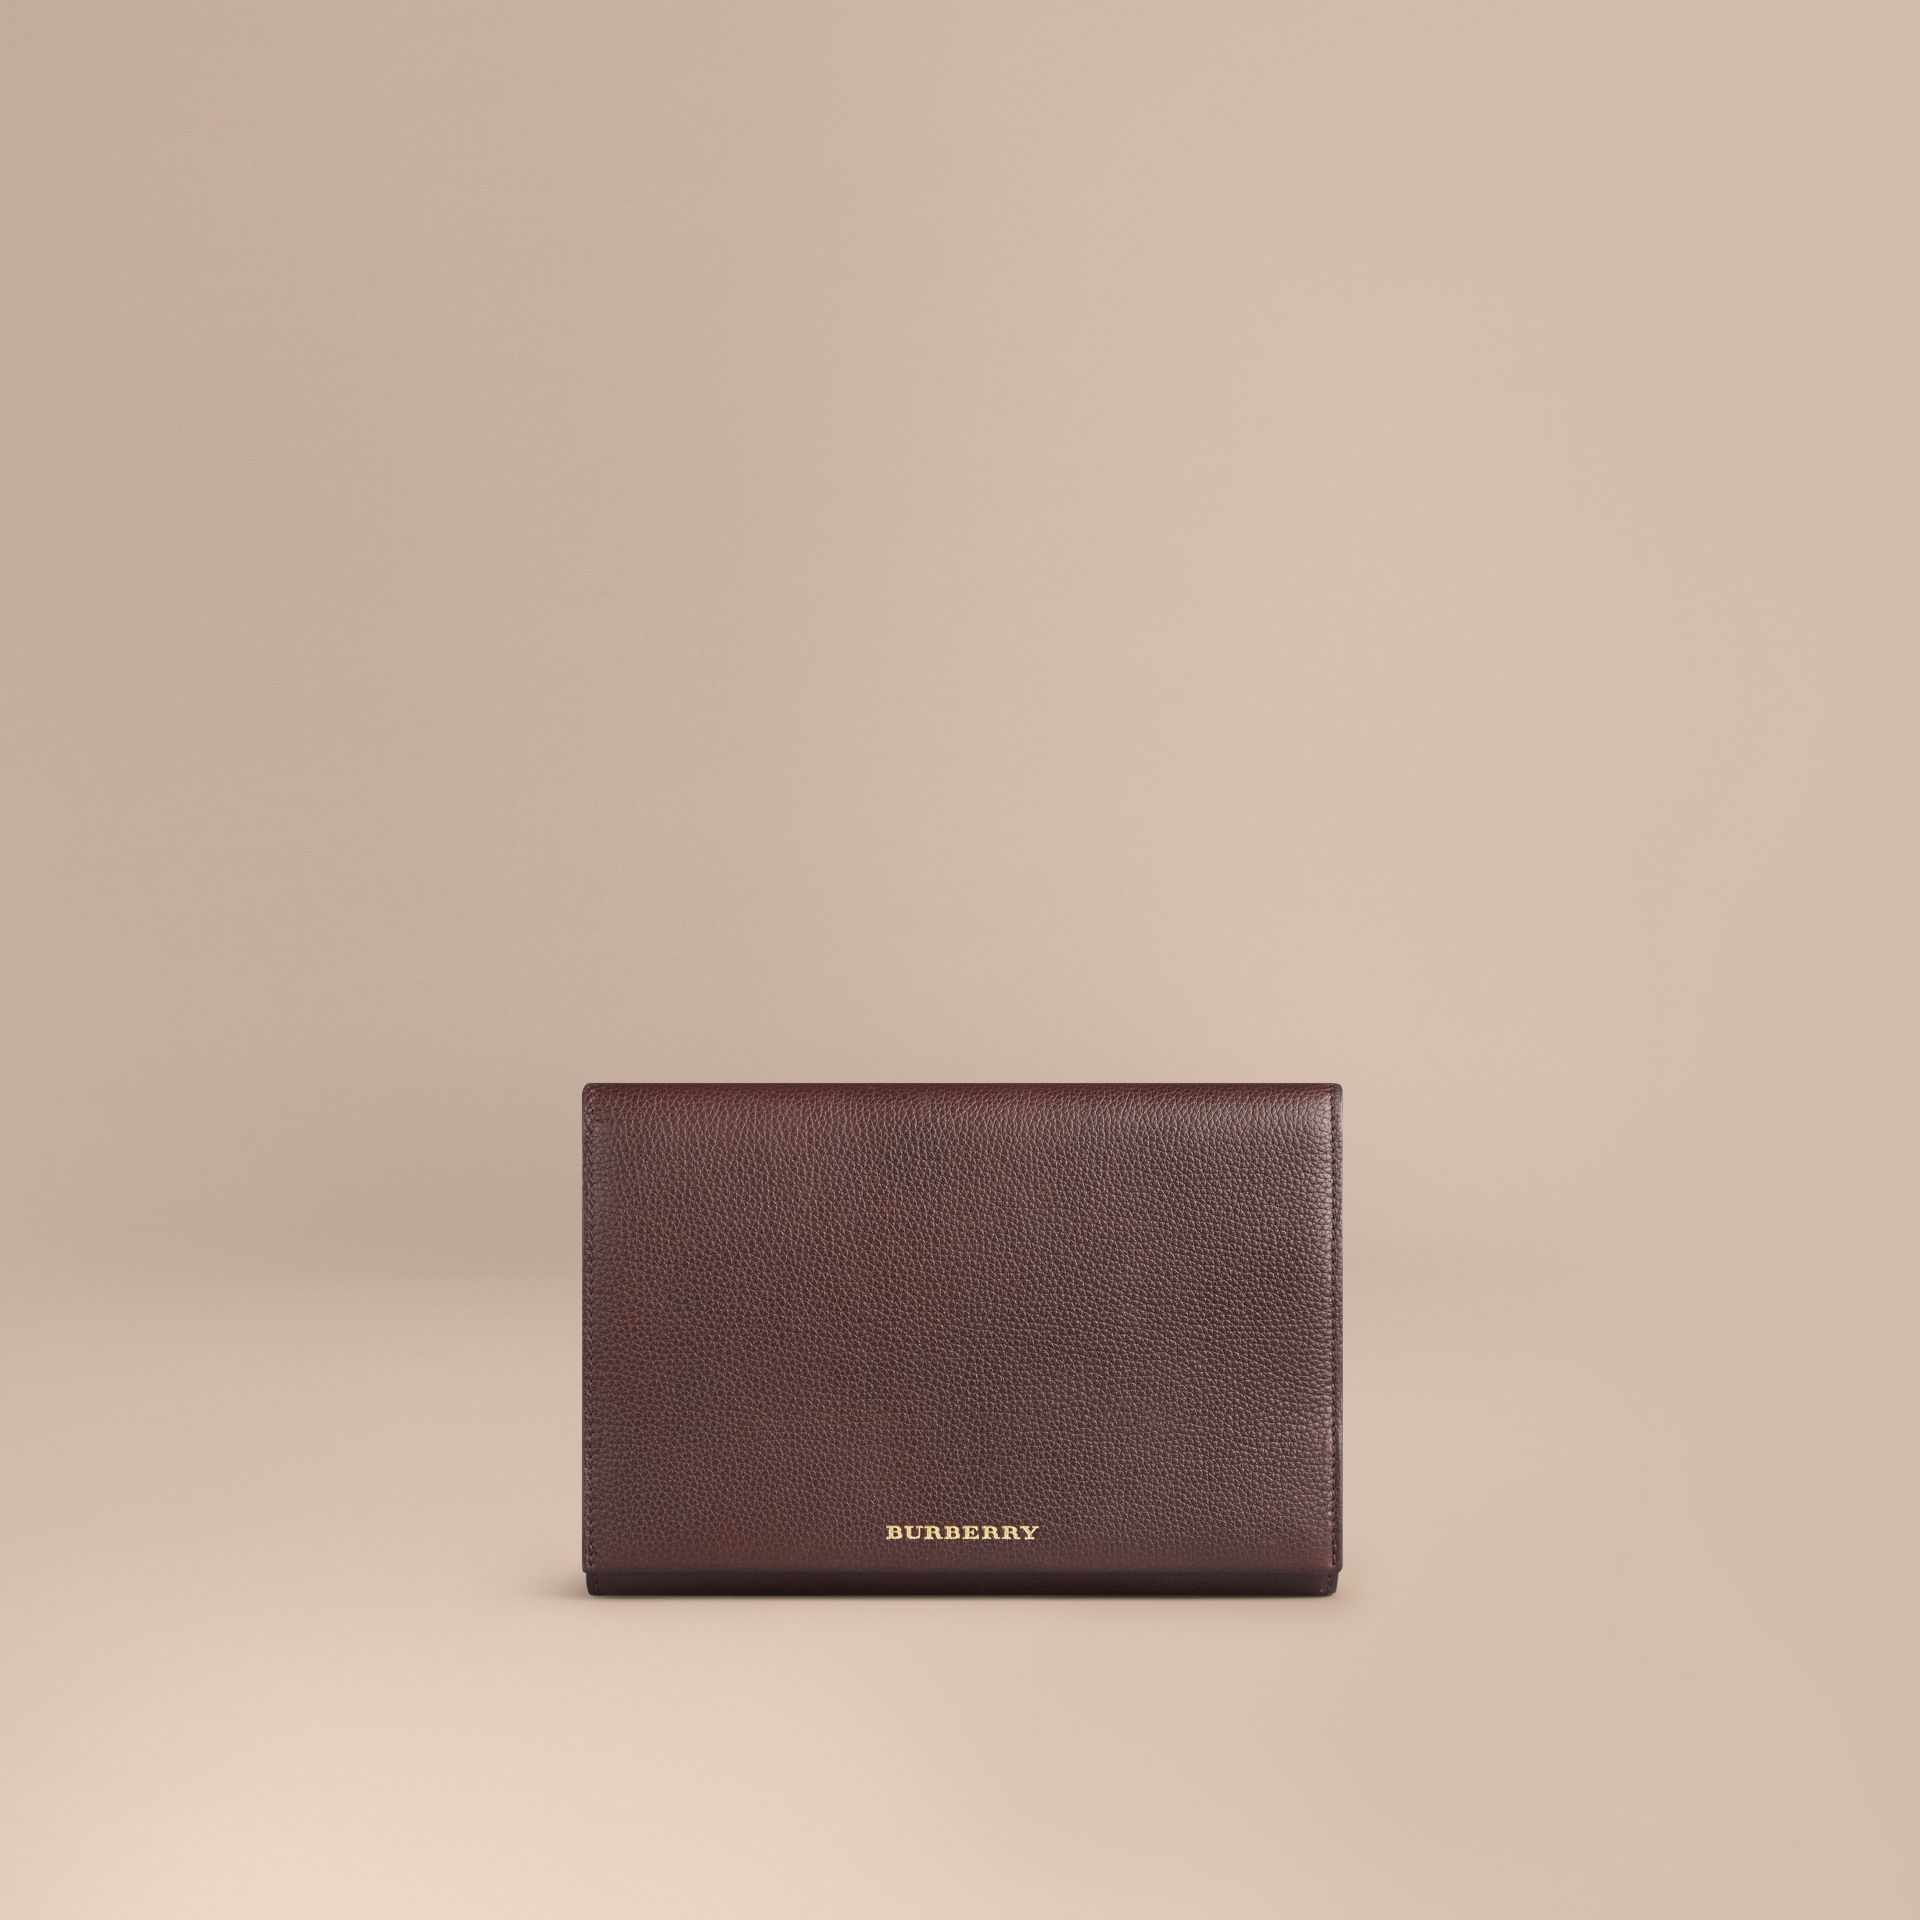 Grainy Leather Travel Wallet in Ebony Red - Men | Burberry - gallery image 1